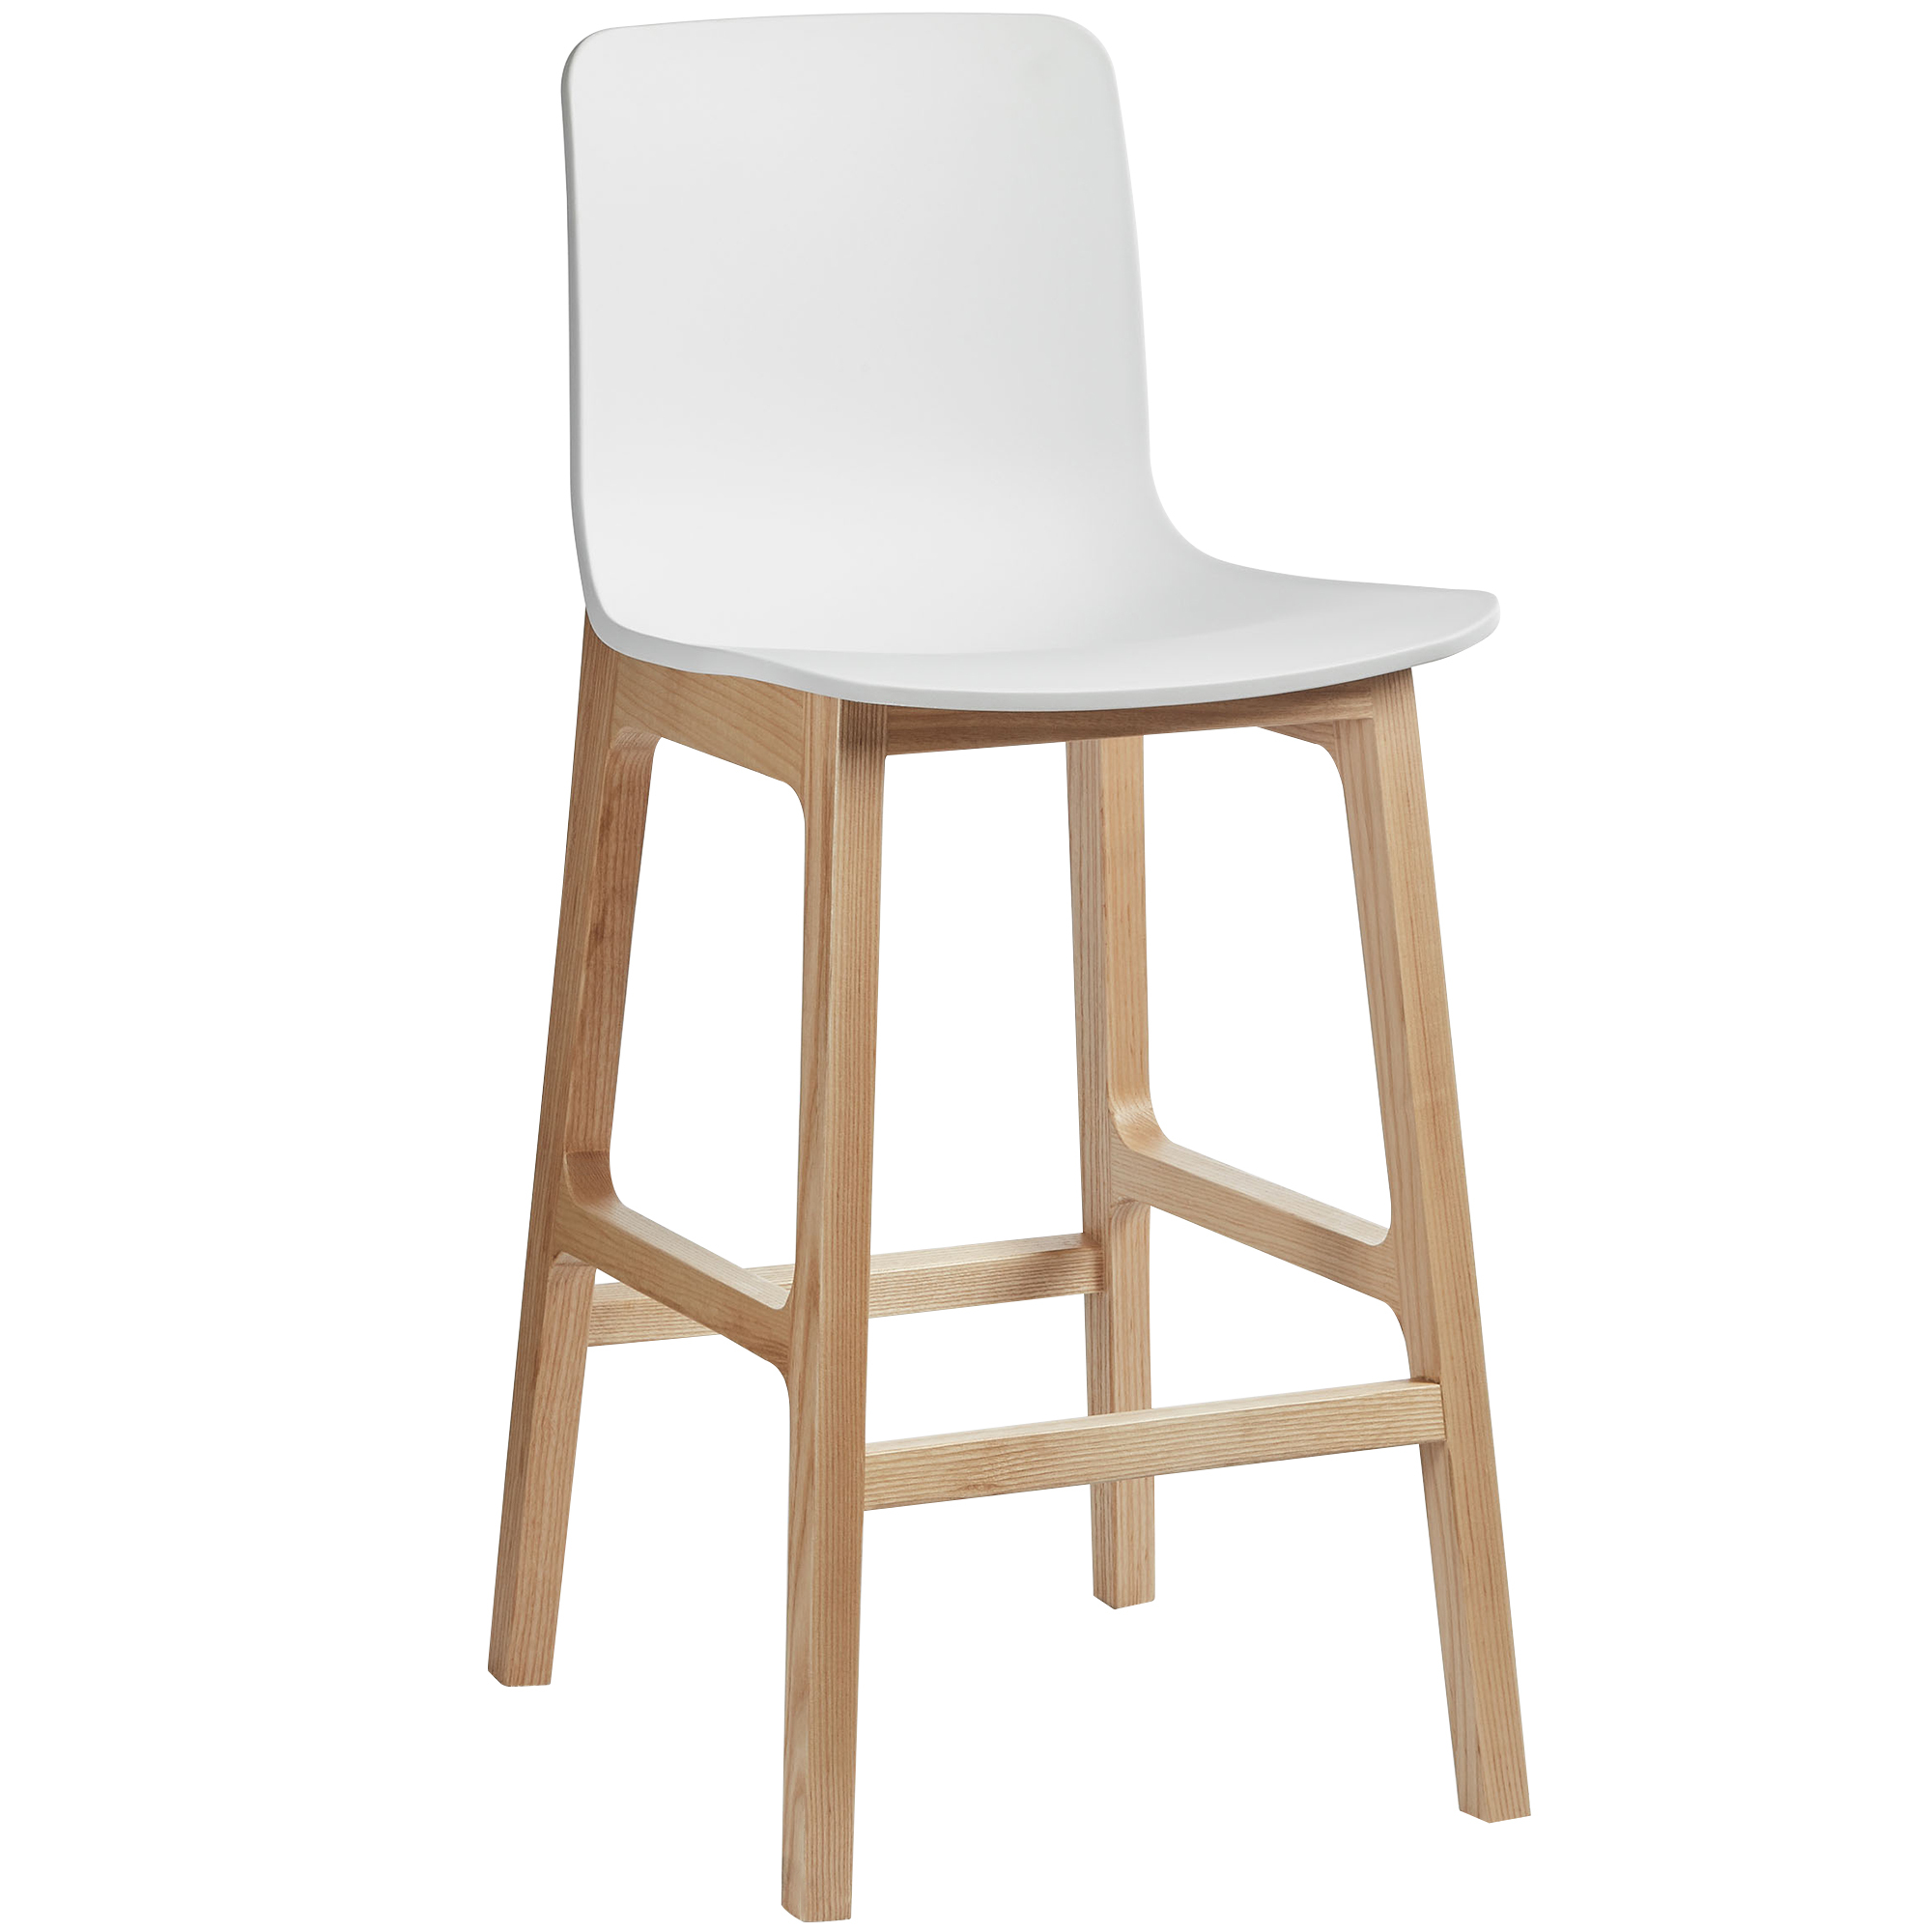 Sku tpwt2601 elliot high back bar stool is also sometimes listed under the following manufacturer numbers adst2bkp adst2grp adst2whp